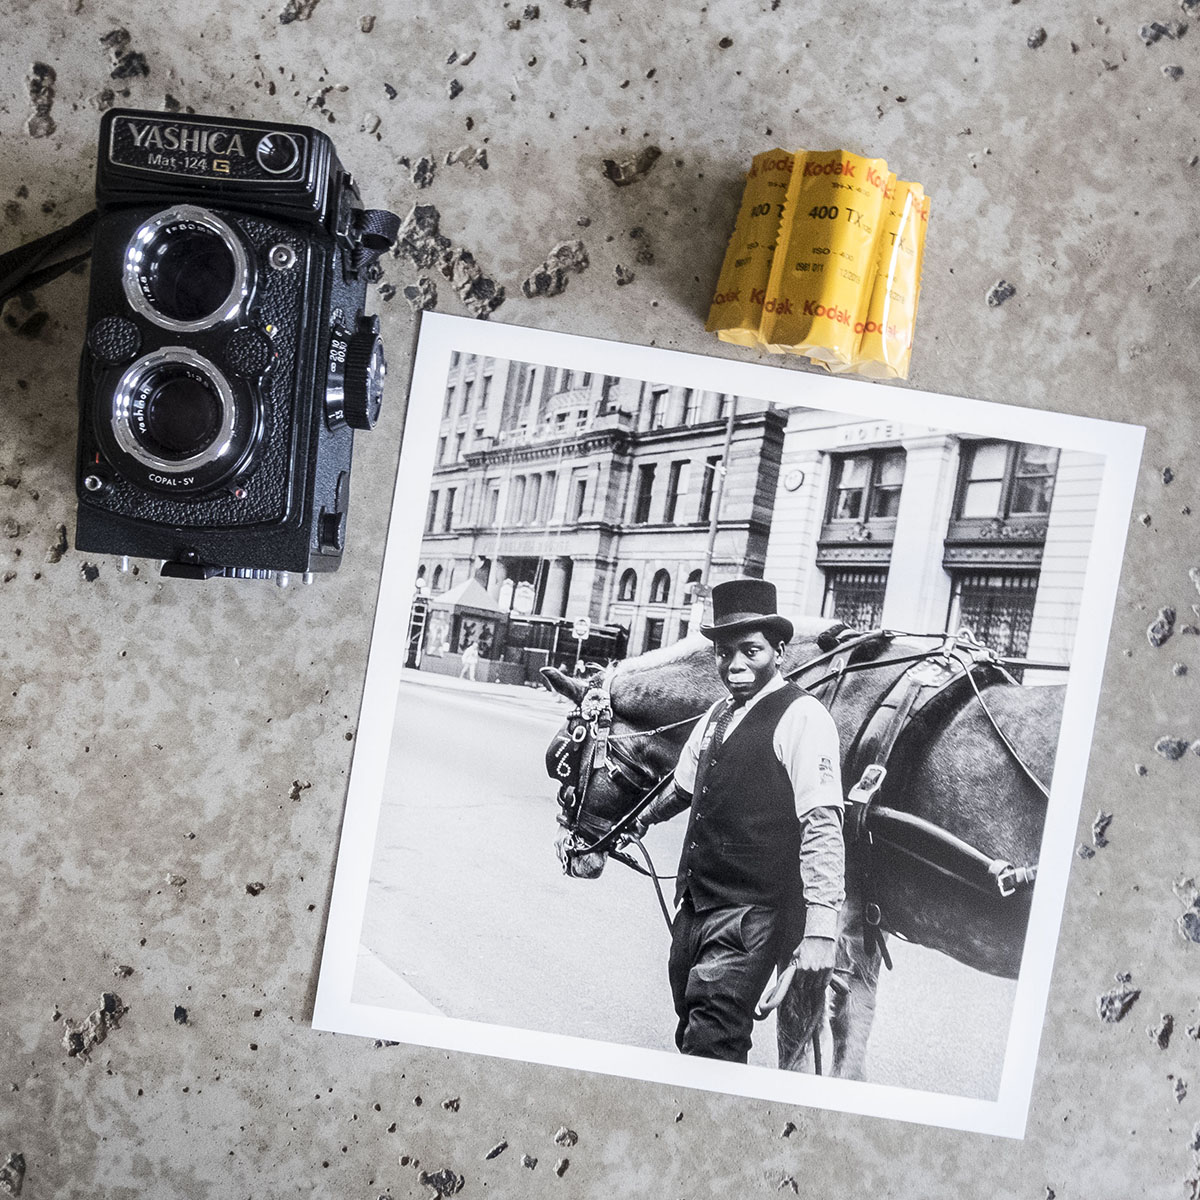 Yashica, the film, and a recent print from film.